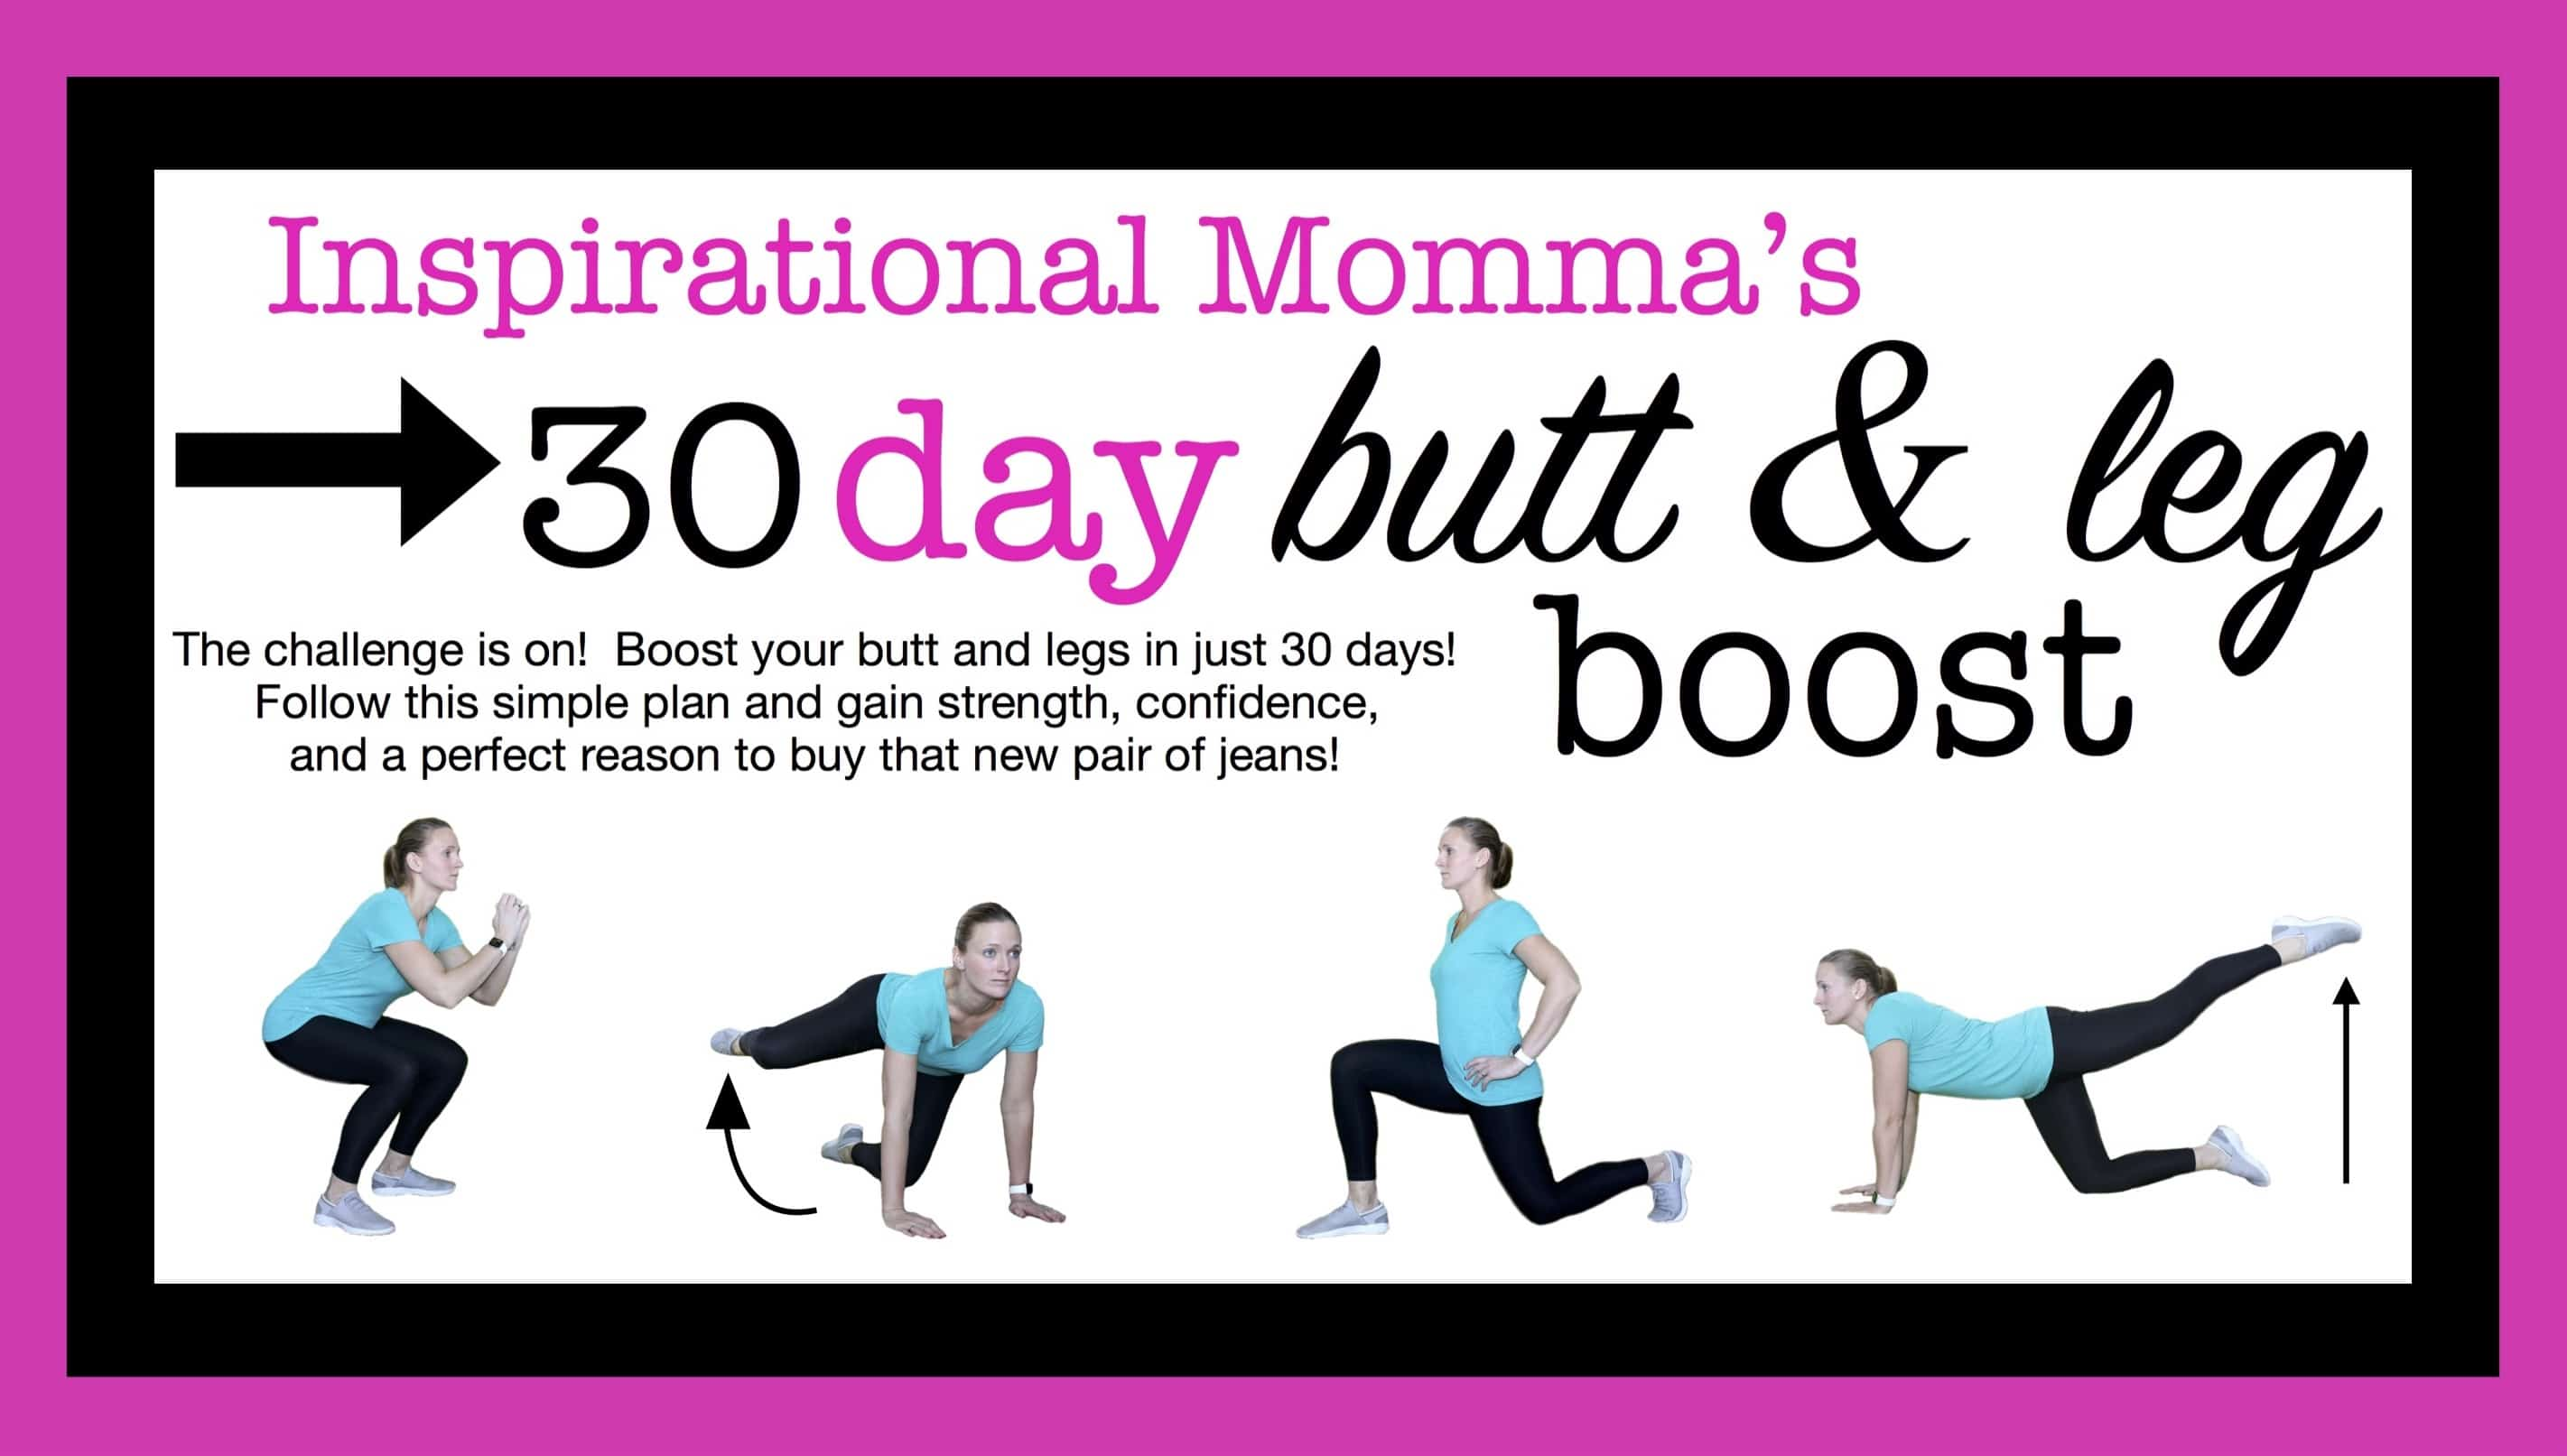 This 30-Day Workout Challenge Butt & Leg Boost is is just what you need to gain strength, confidence, and a perfect reason to buy that new pair of jeans! #inspirationalmomma #fitness #exercise #buttandlegs #challenge #30days #heellifts #squats #lunges